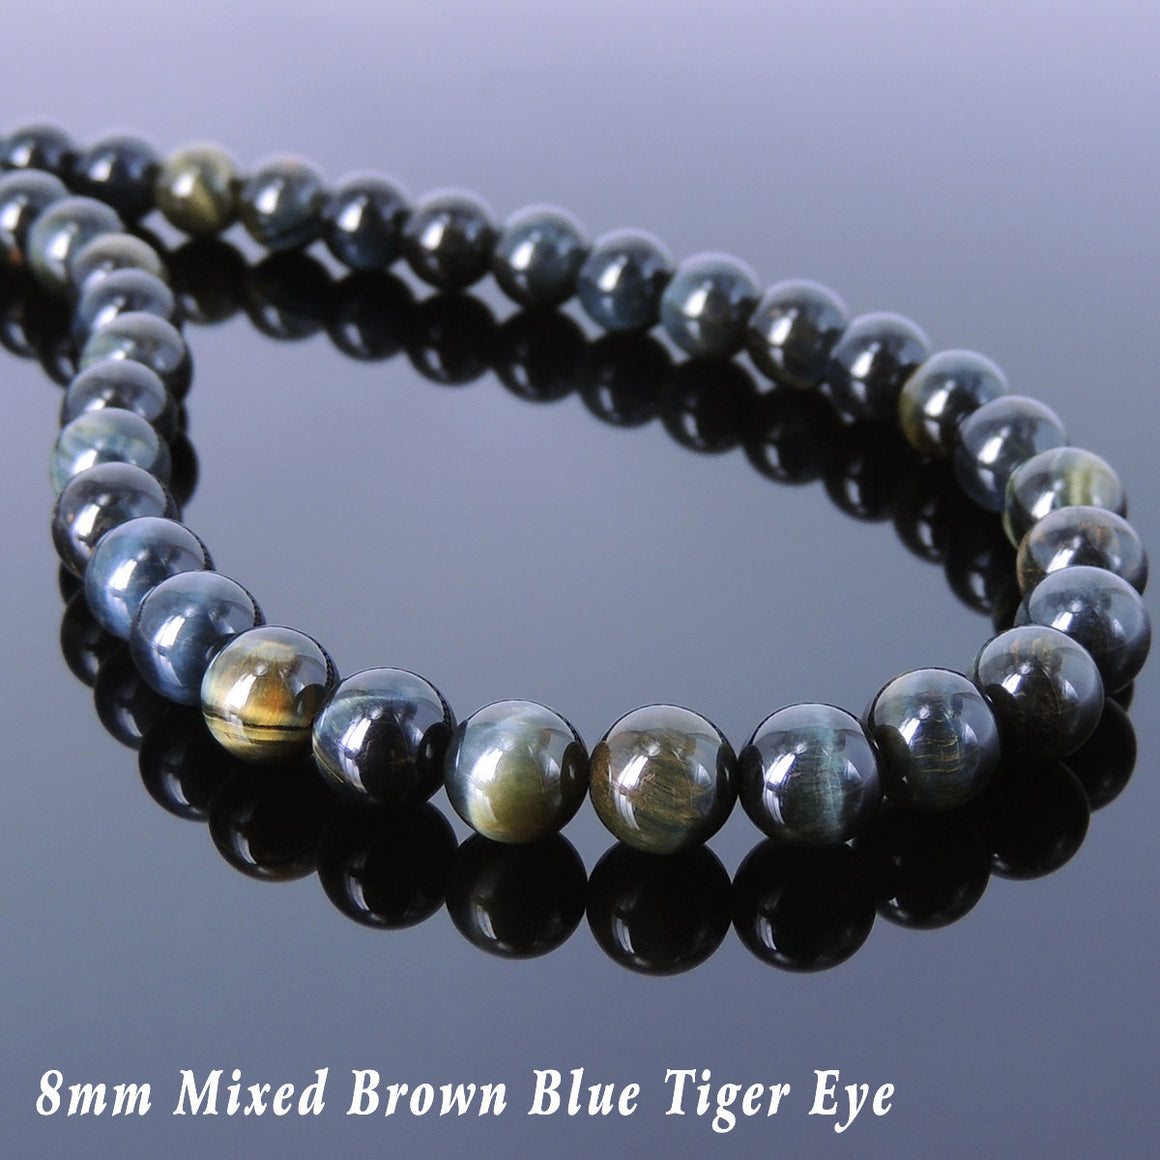 8mm Rare Mixed Brown Blue Tiger Eye Healing Gemstone Necklace with S925 Sterling Silver Spacers & S-Hook Clasp - Handmade by Gem & Silver NK096